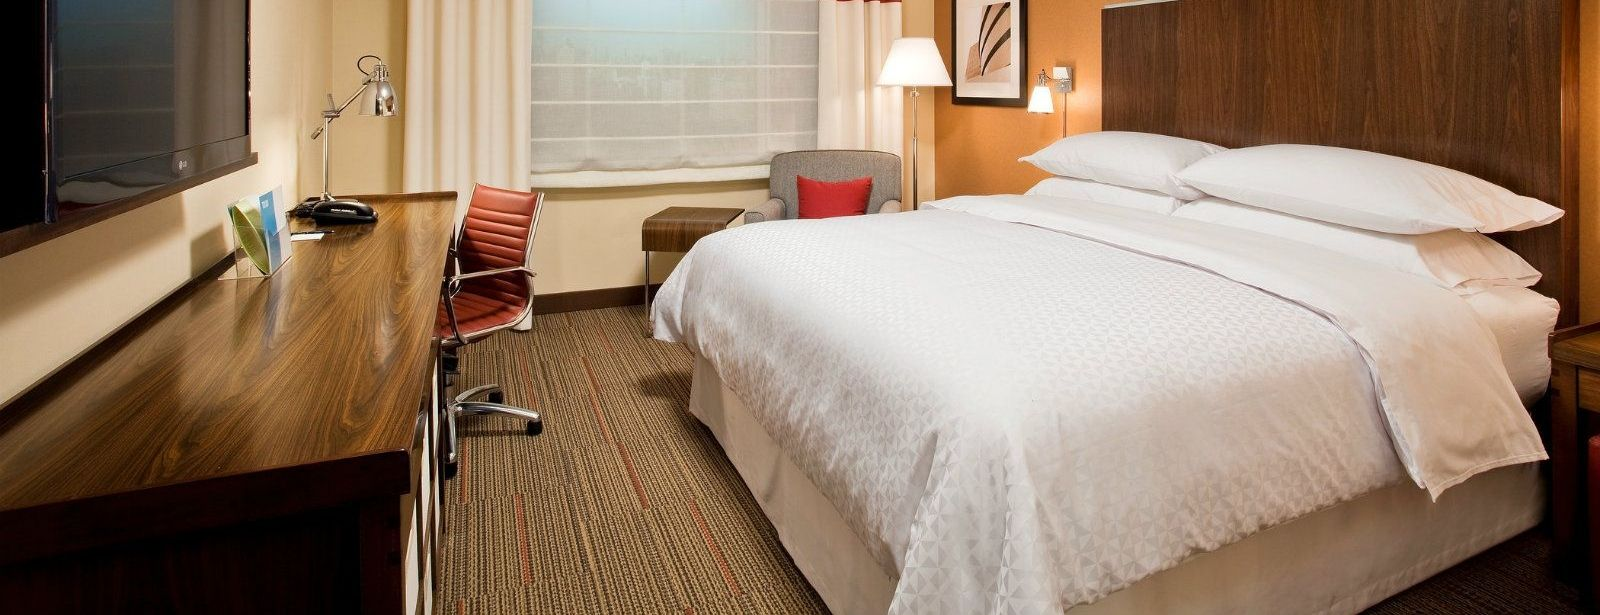 Peoria Accommodations - Accessible Guest Room